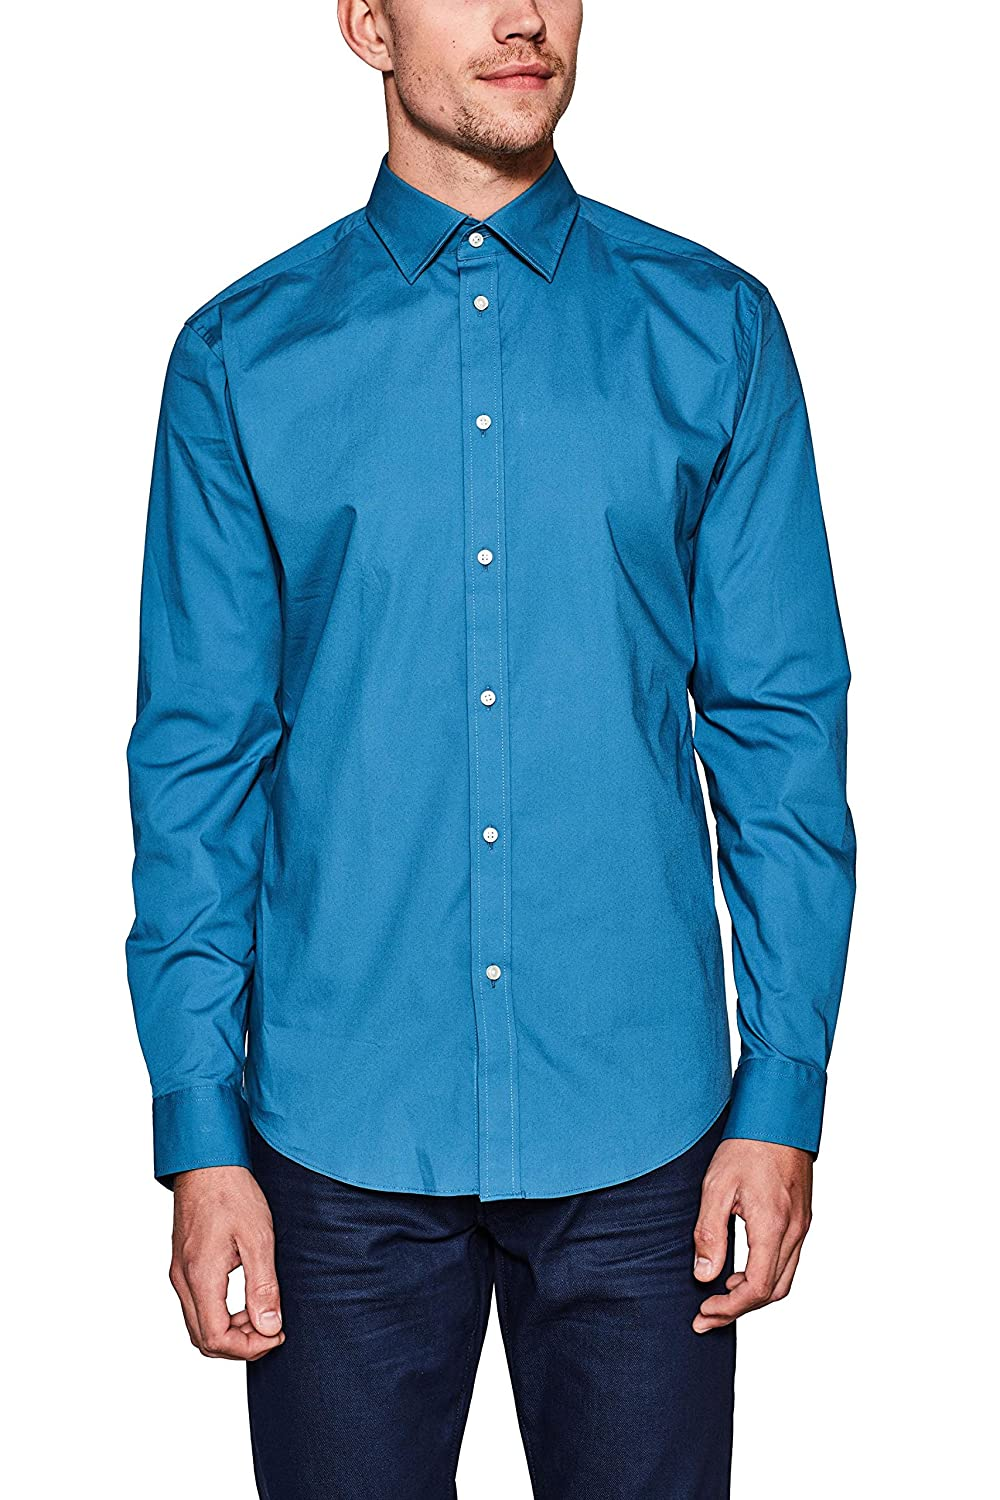 ESPRIT Collection 107eo2f005 - Camisa Hombre